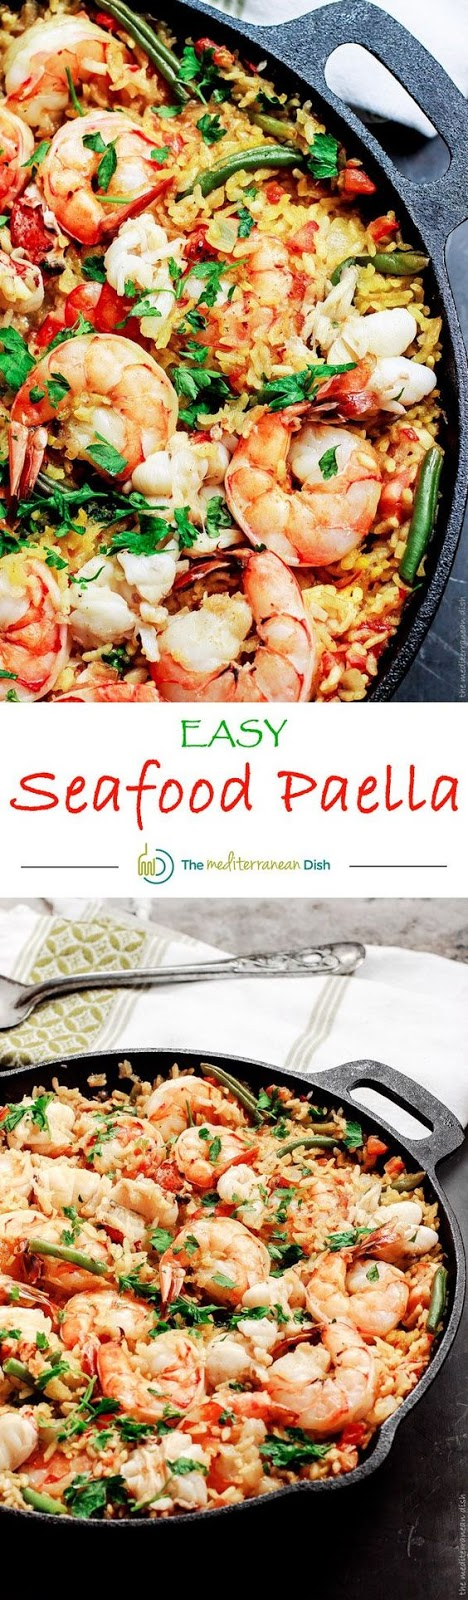 easy seafood paella recipe